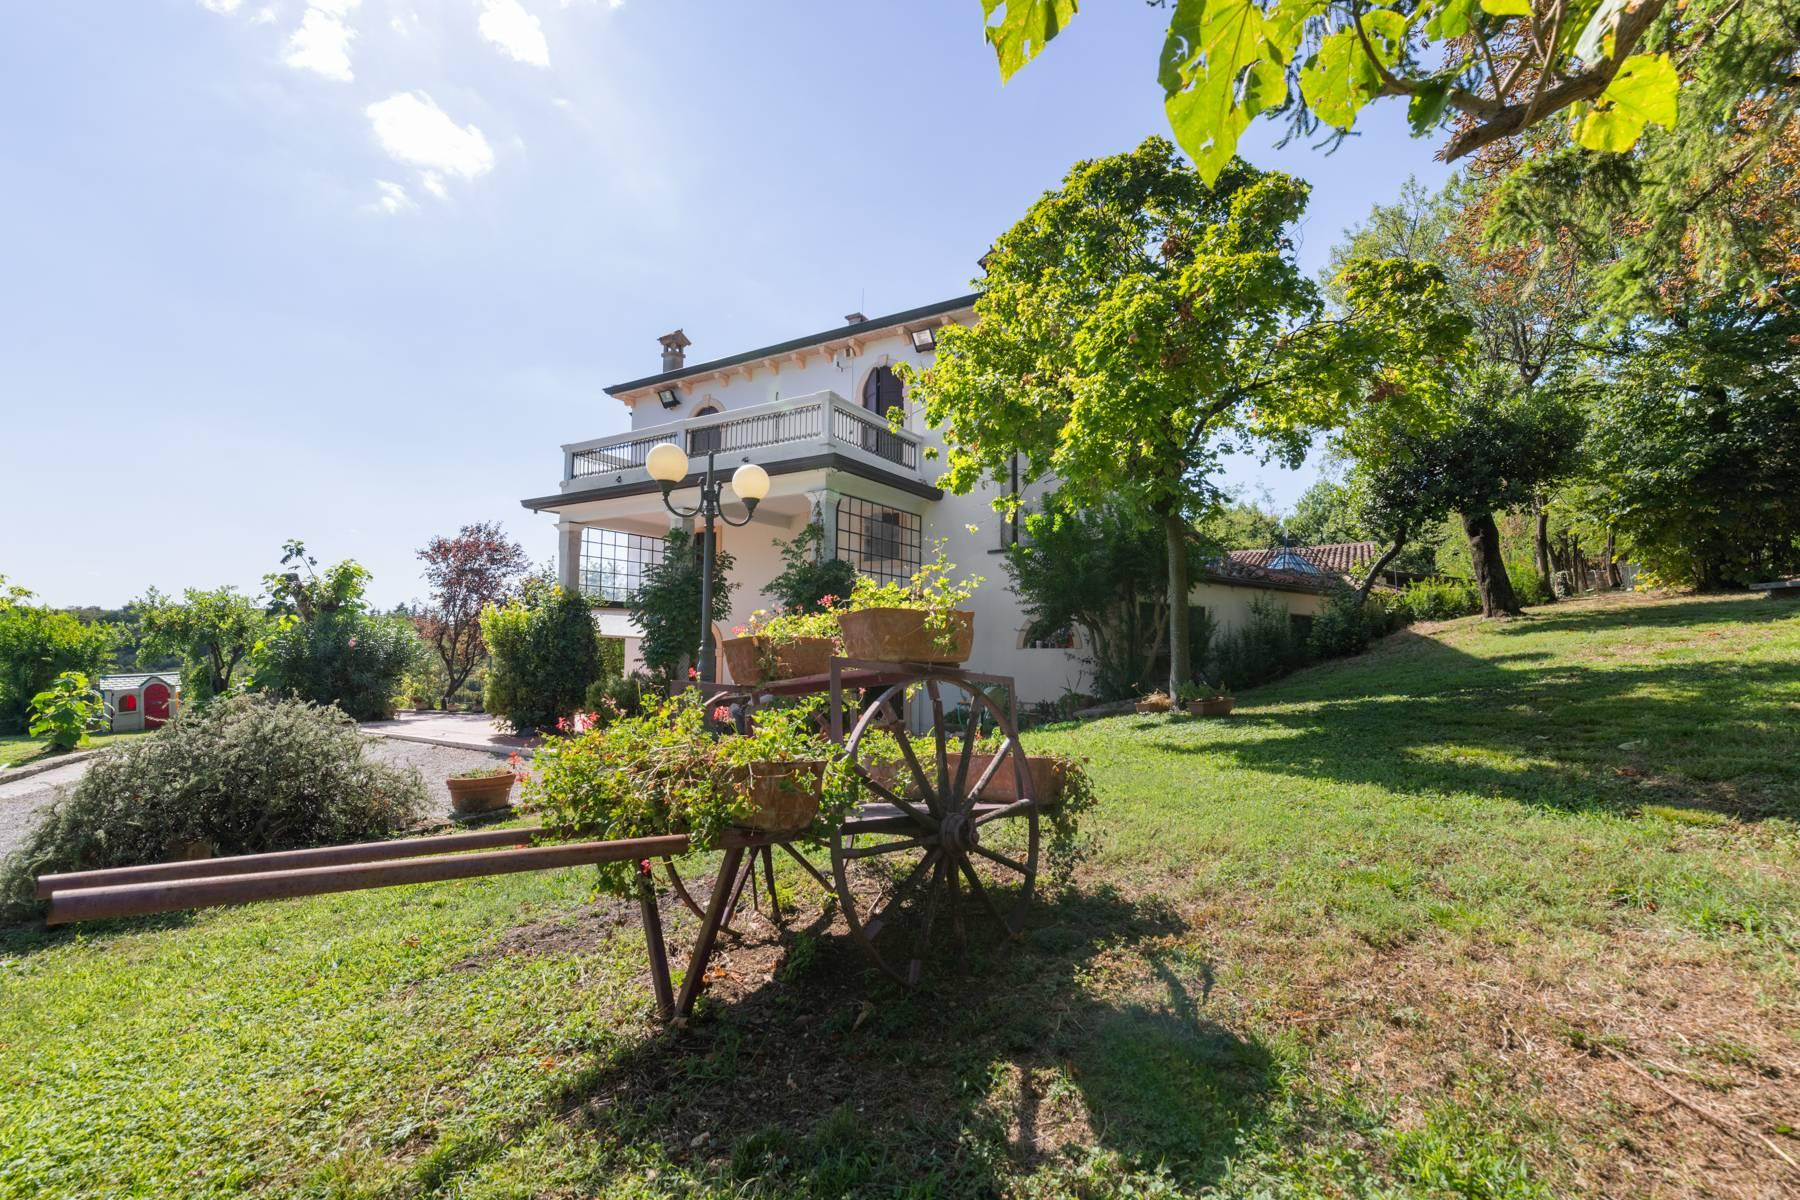 Historic country villa with swimming pool, tennis court and estate on the hills of Verona - 7